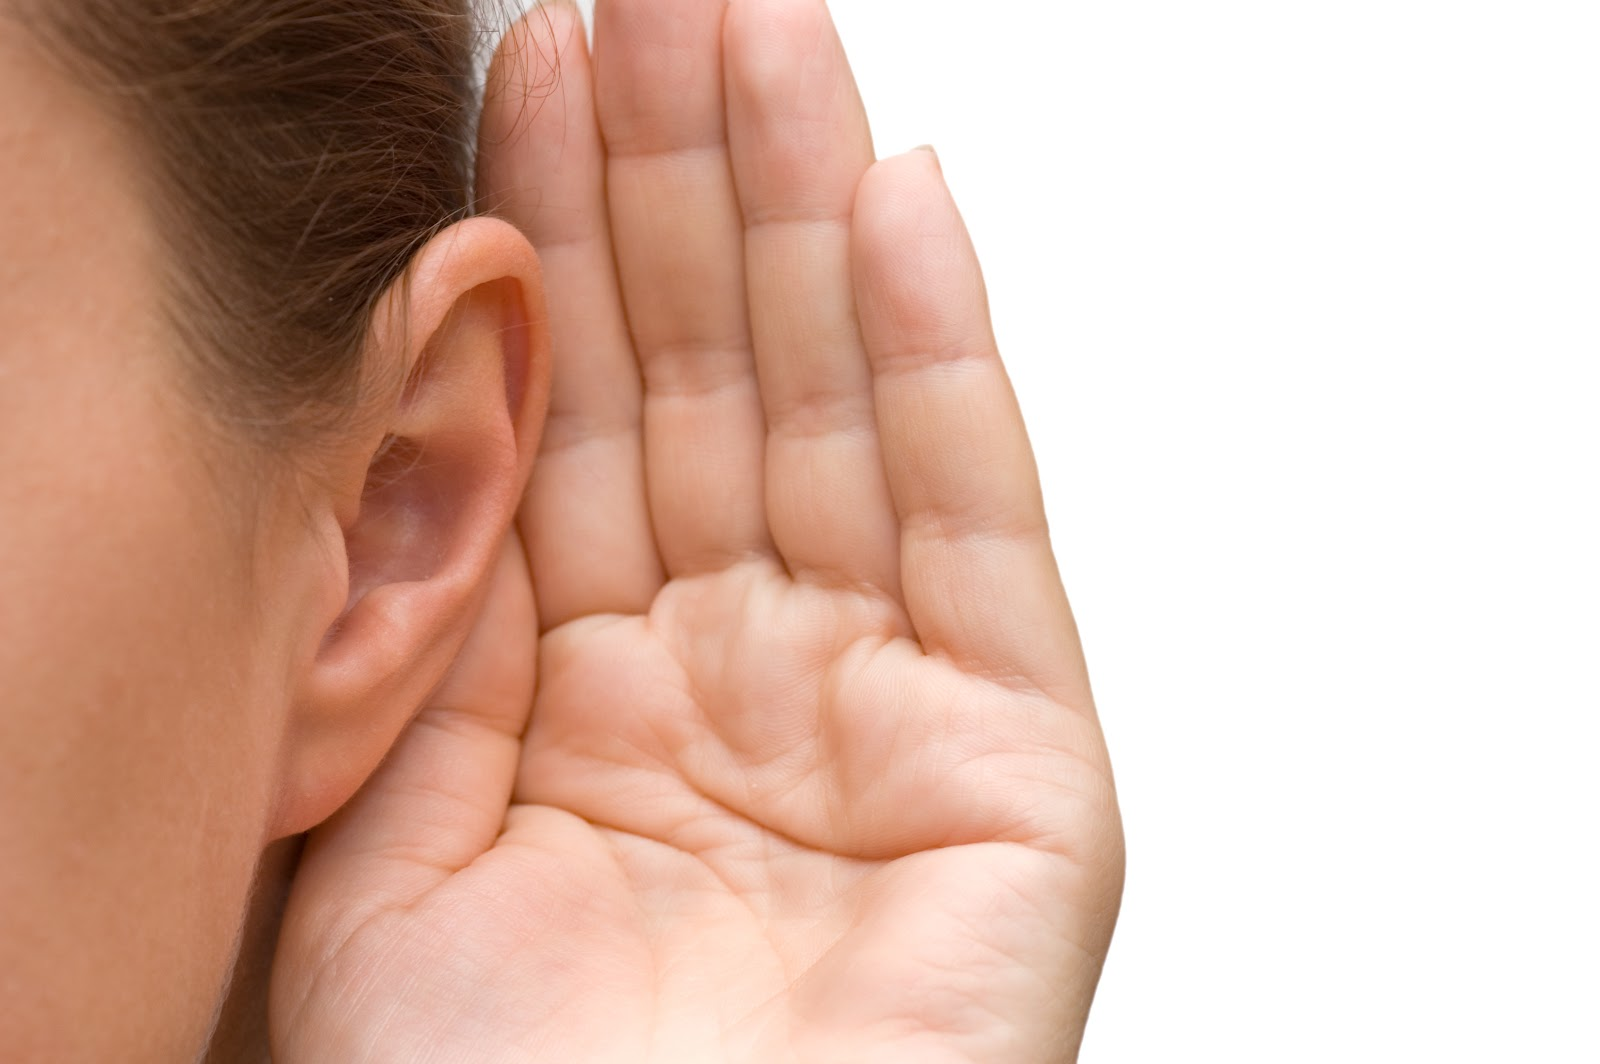 Loud Noises Can Affect Your Hearing